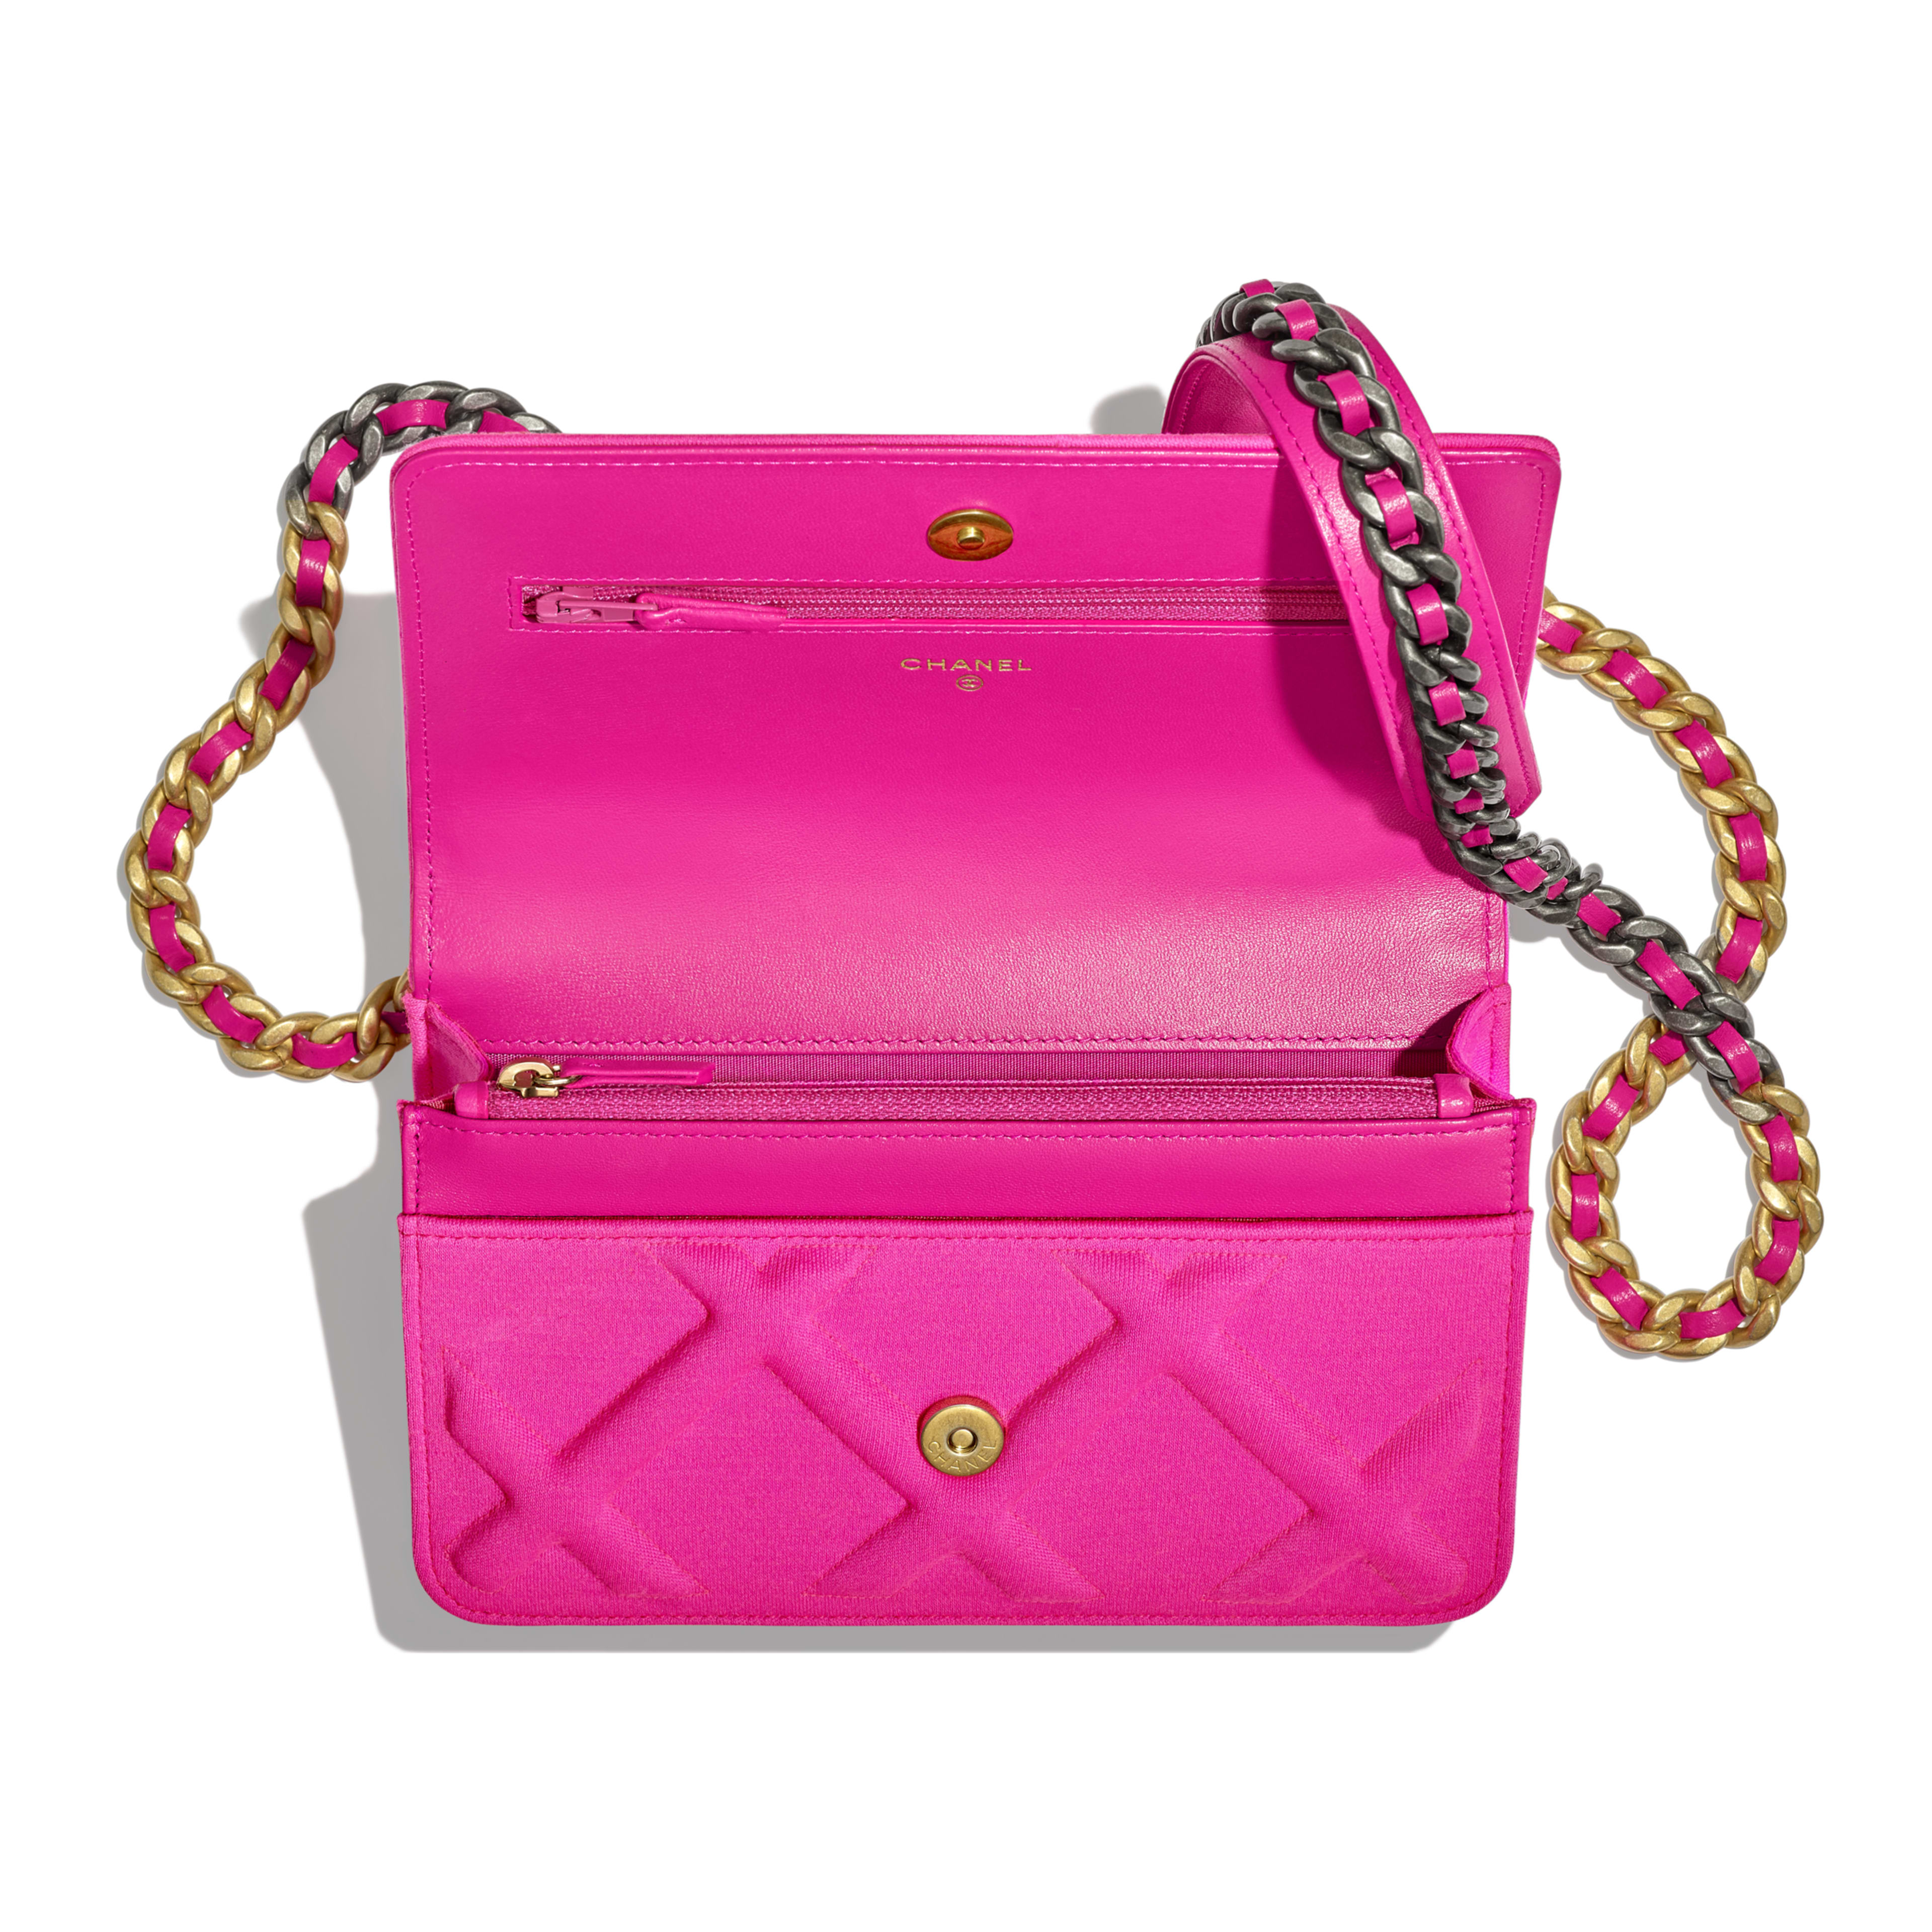 CHANEL 19 Wallet on Chain - Fuchsia - Jersey, Gold-Tone, Silver-Tone & Ruthenium-Finish Metal - Other view - see full sized version